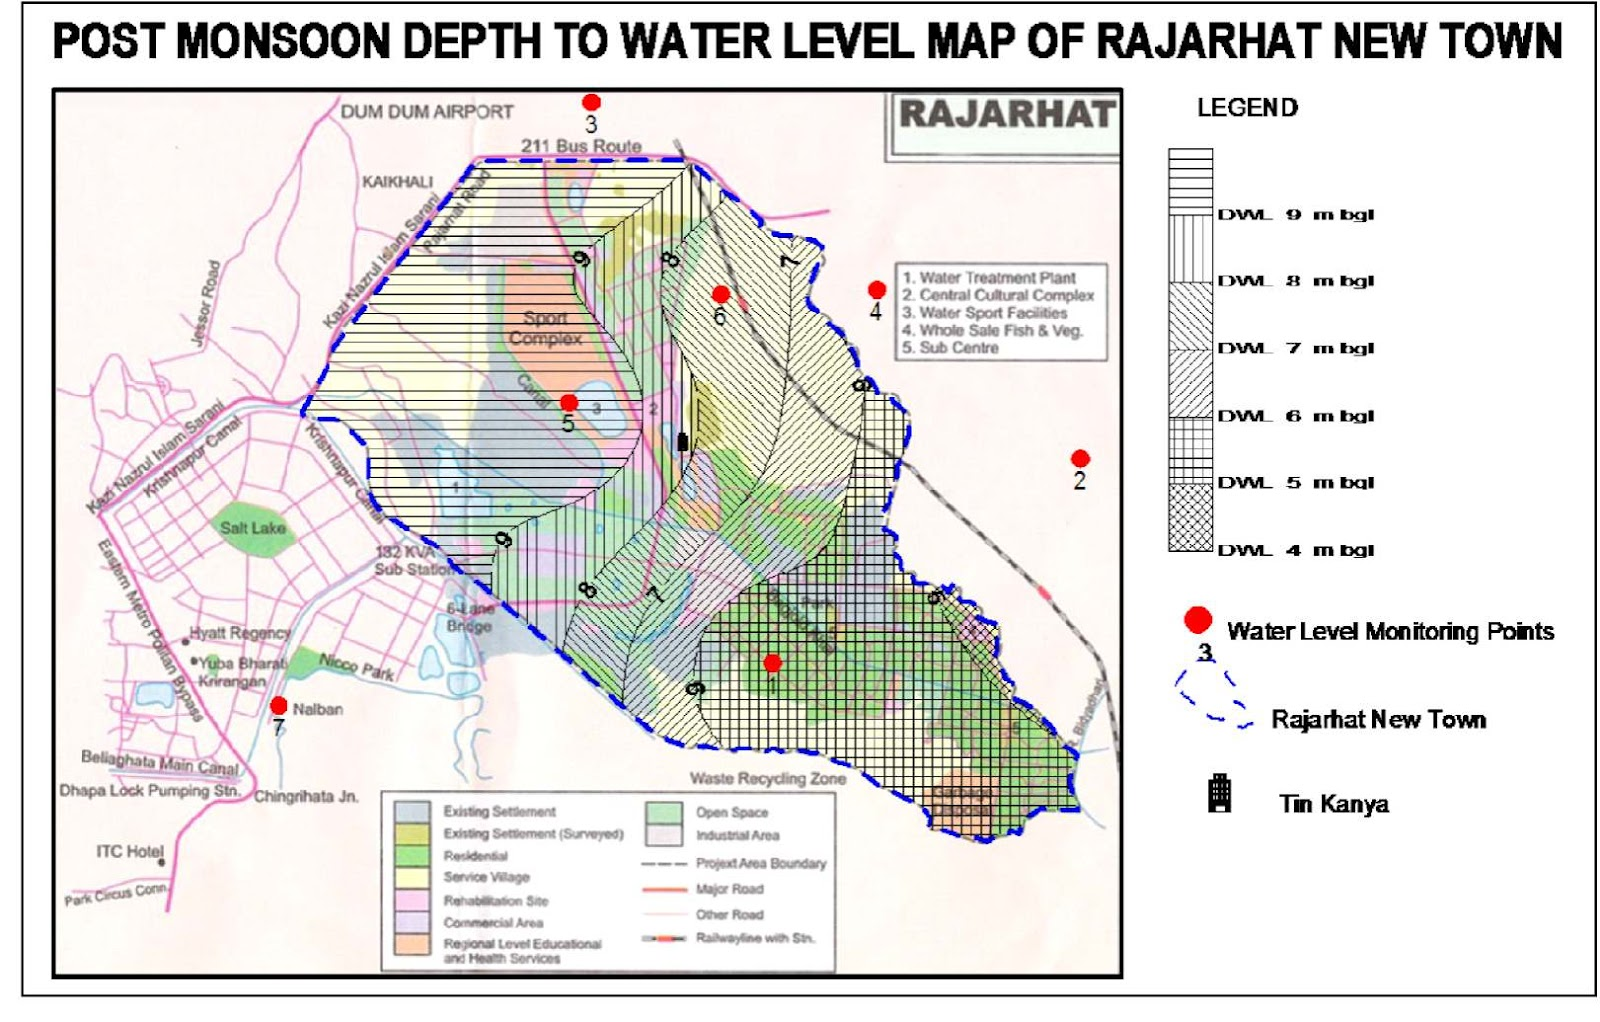 it appears that the post monsoon depth to water level of the project area is between 8 to 9 metres below ground level water level is also collected from a